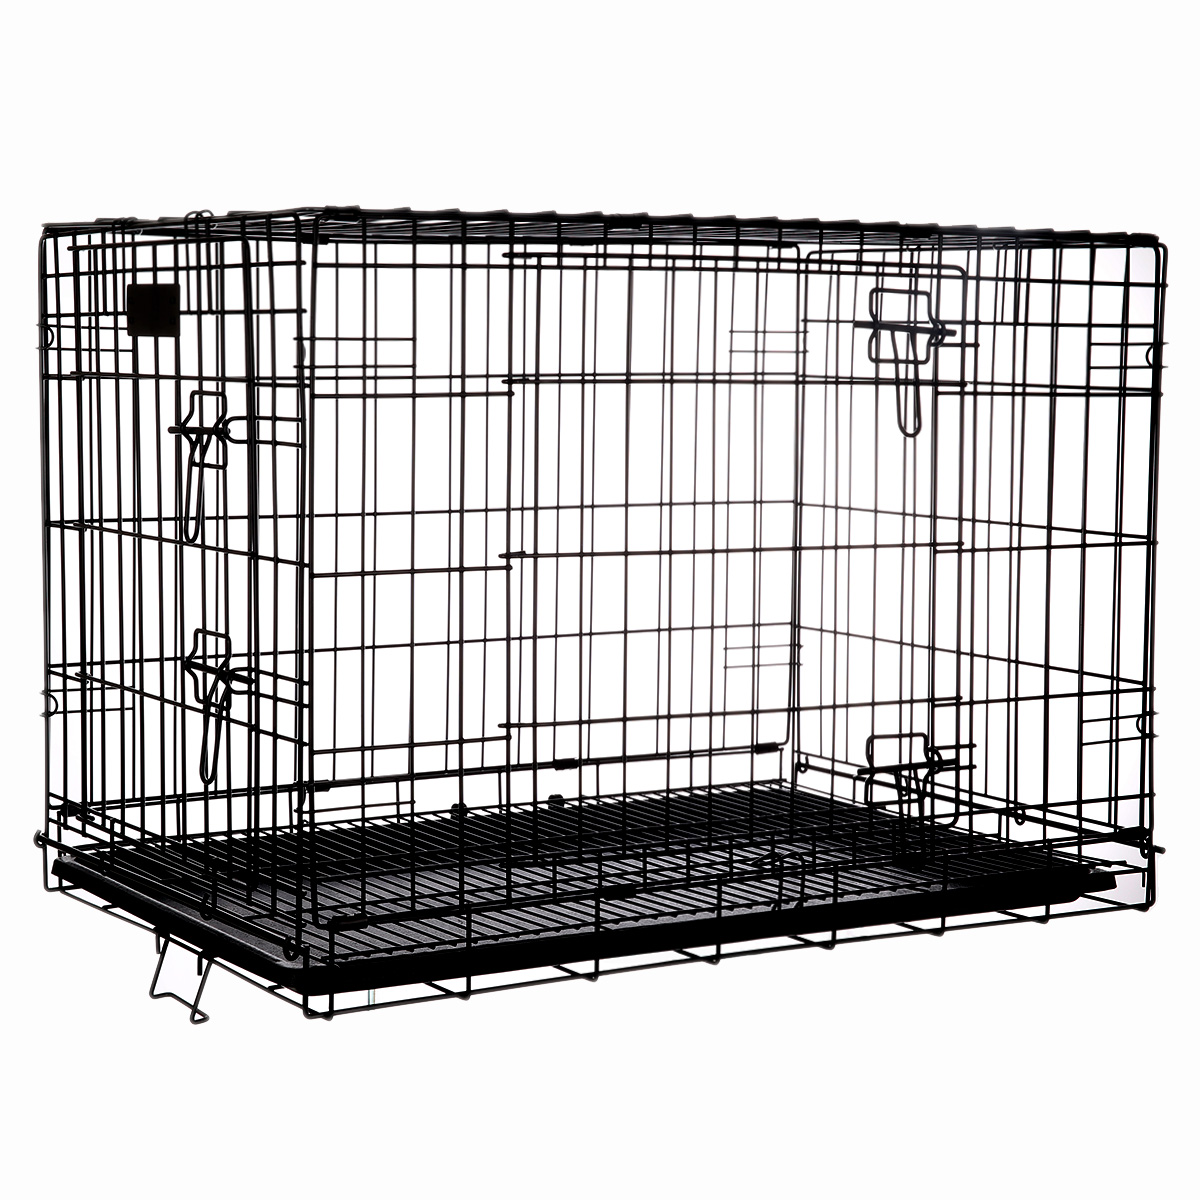 Porch net spray cages â®pawise 62x43. x 50cm plus network at the end of small dog cage 24 provinces shipping